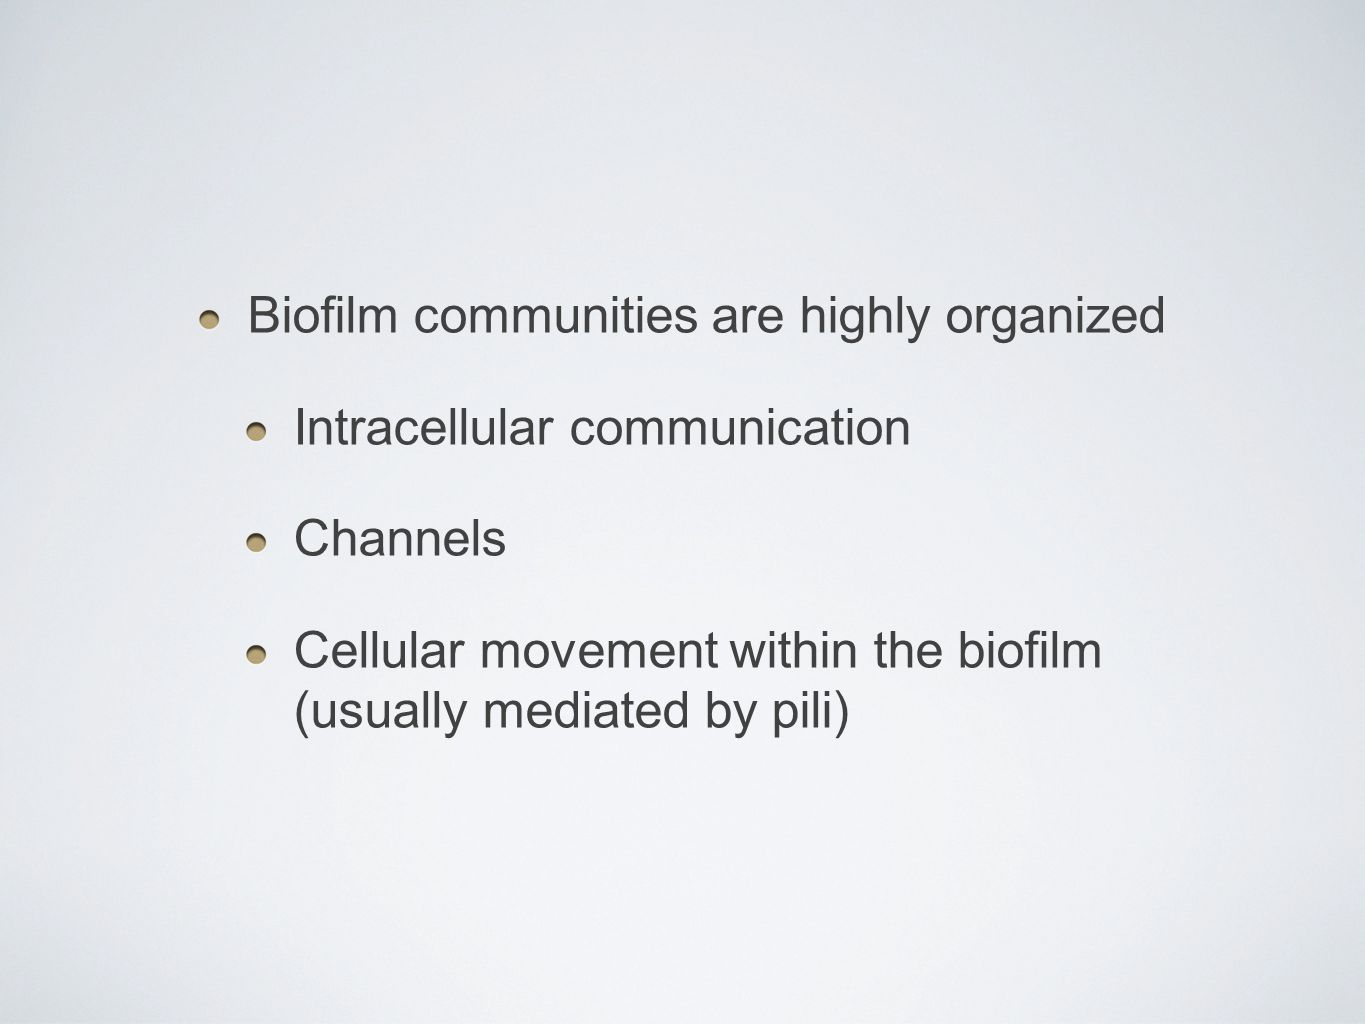 Biofilm communities are highly organized